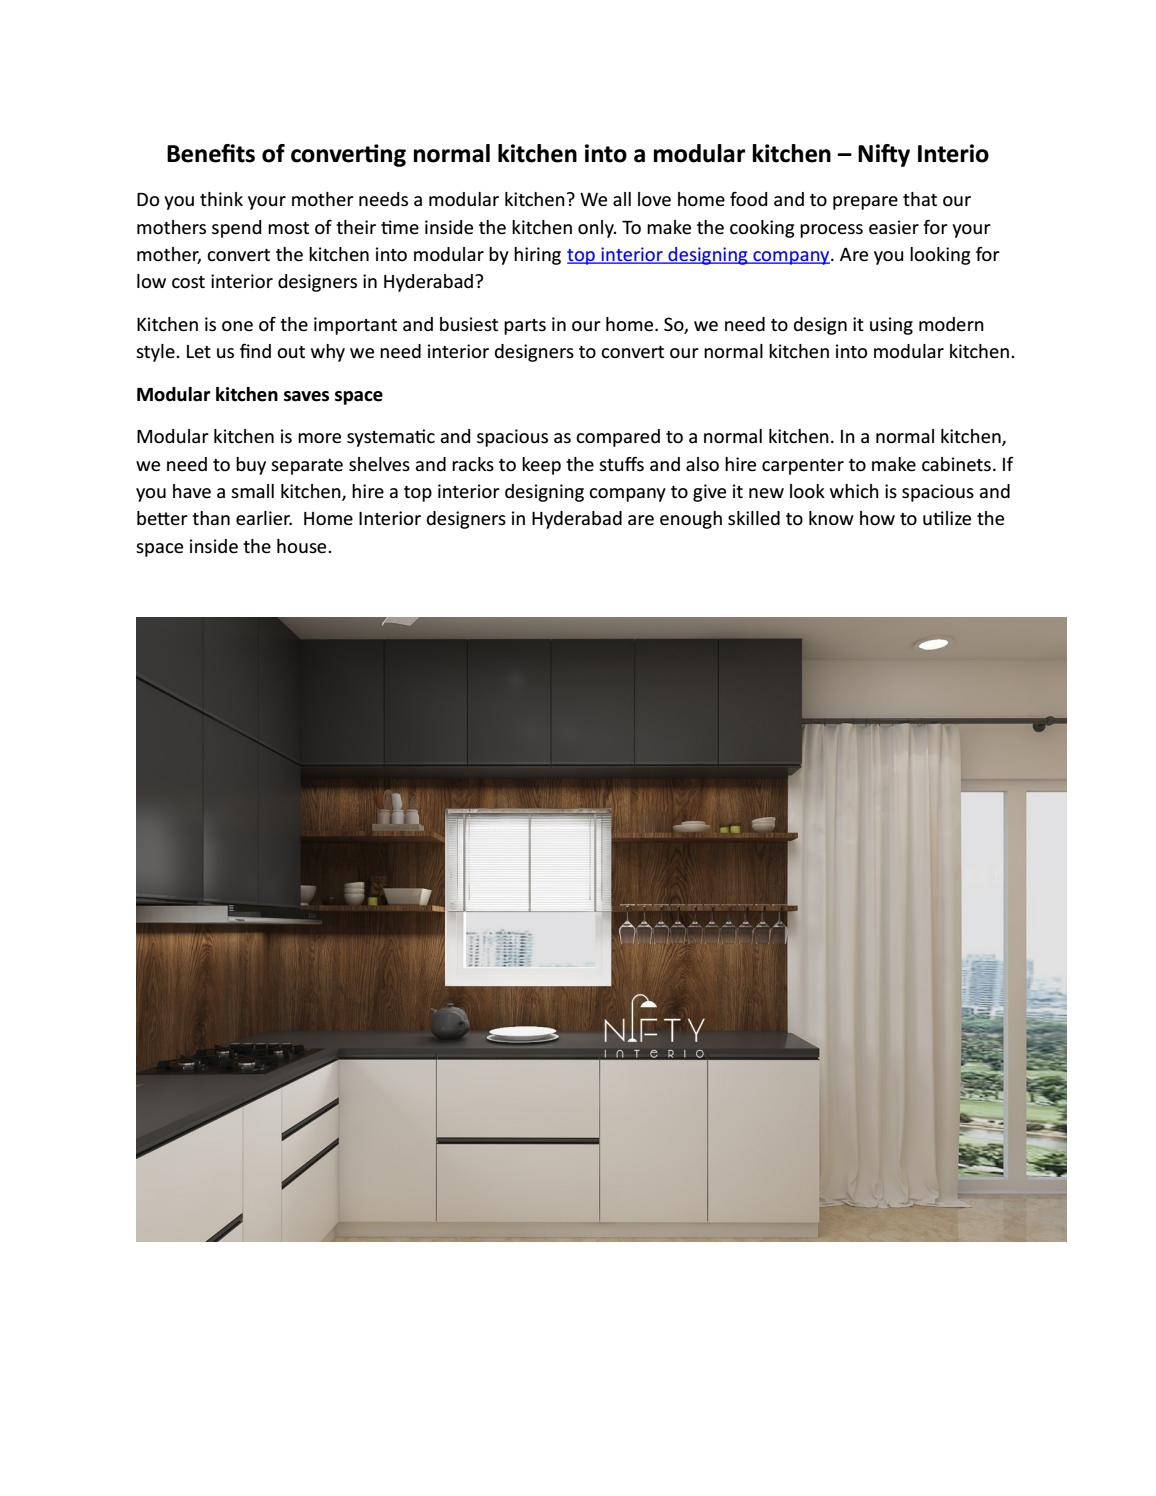 Benefits Of Converting Normal Kitchen Into A Modular Kitchen Nifty Interio By Niftyinterio Issuu